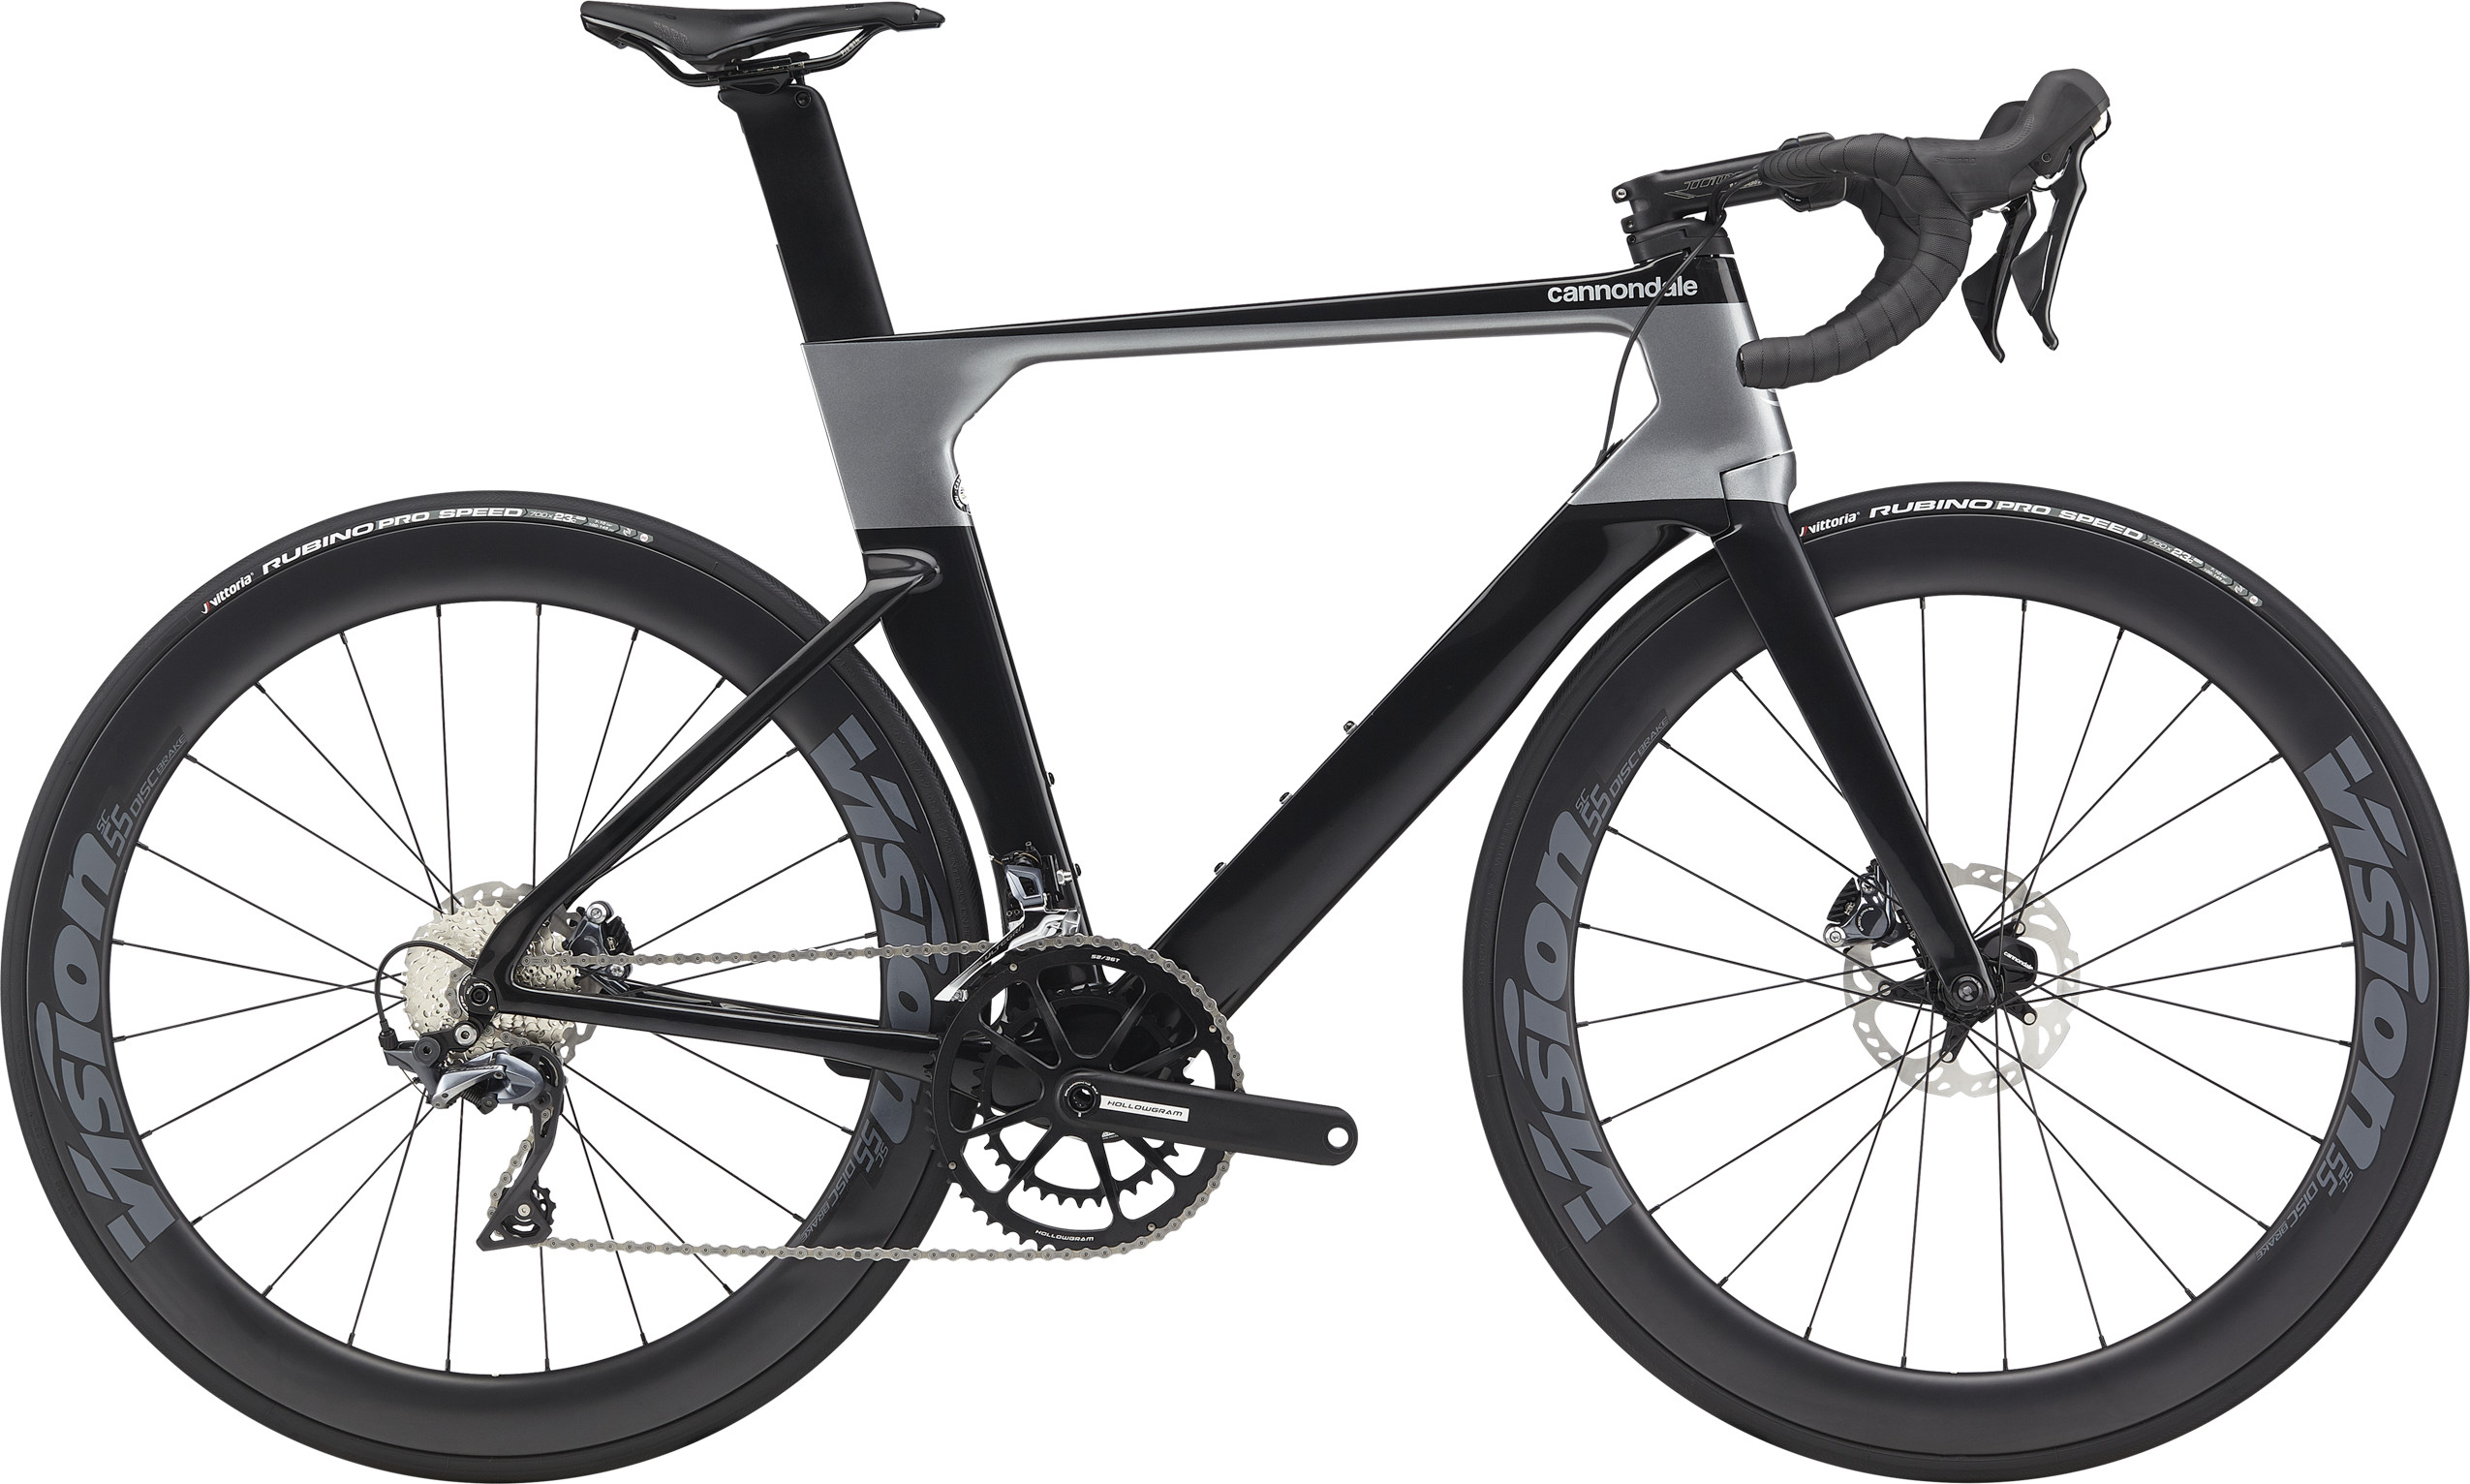 Cannondale 700 M SystemSix Crb Ult